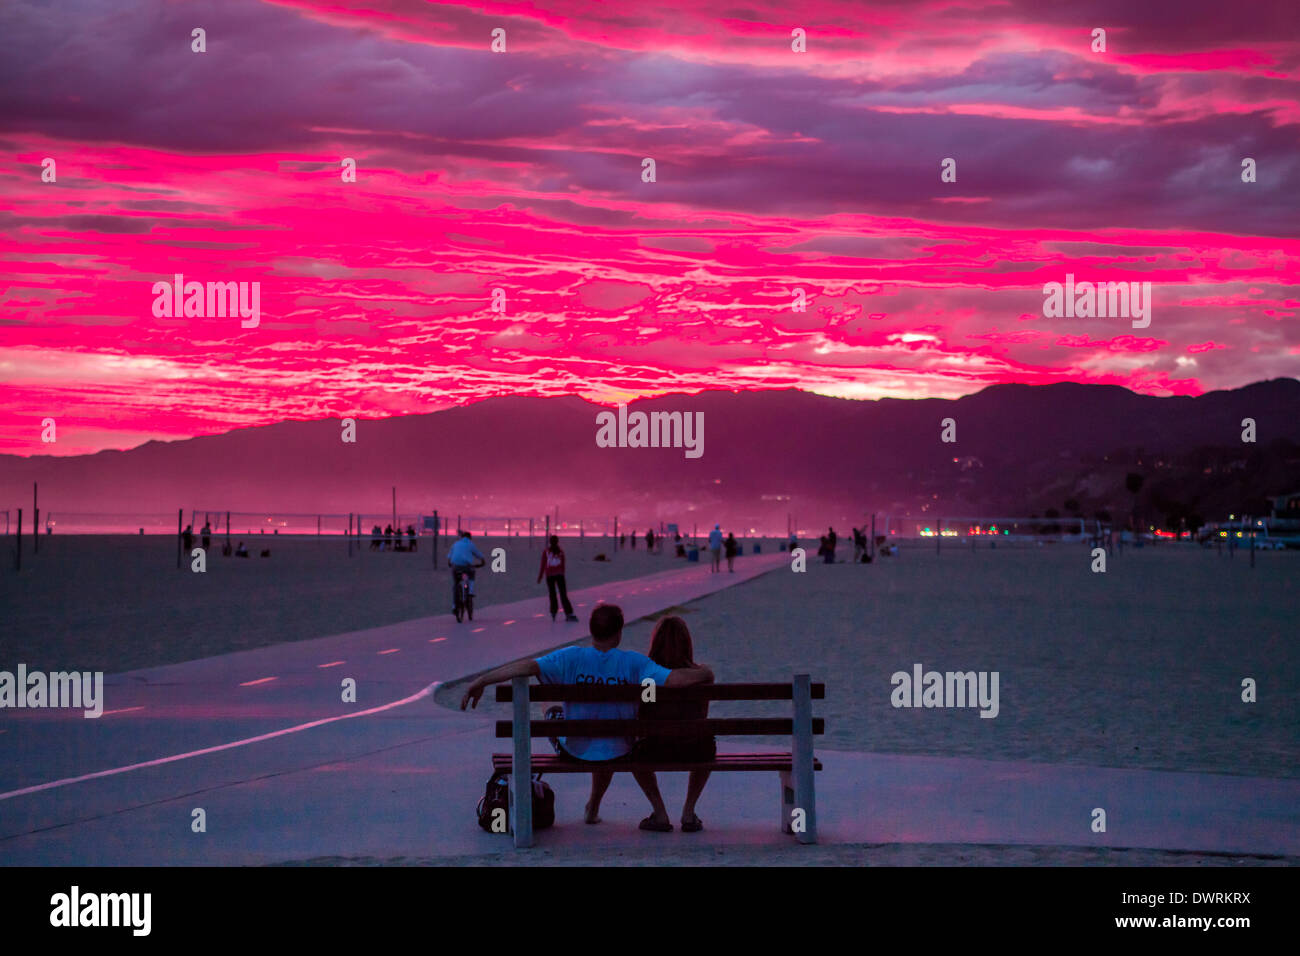 a-spectacular-red-sunset-at-the-beach-in-santa-monica-california-courtesy-DWRKRX.jpg